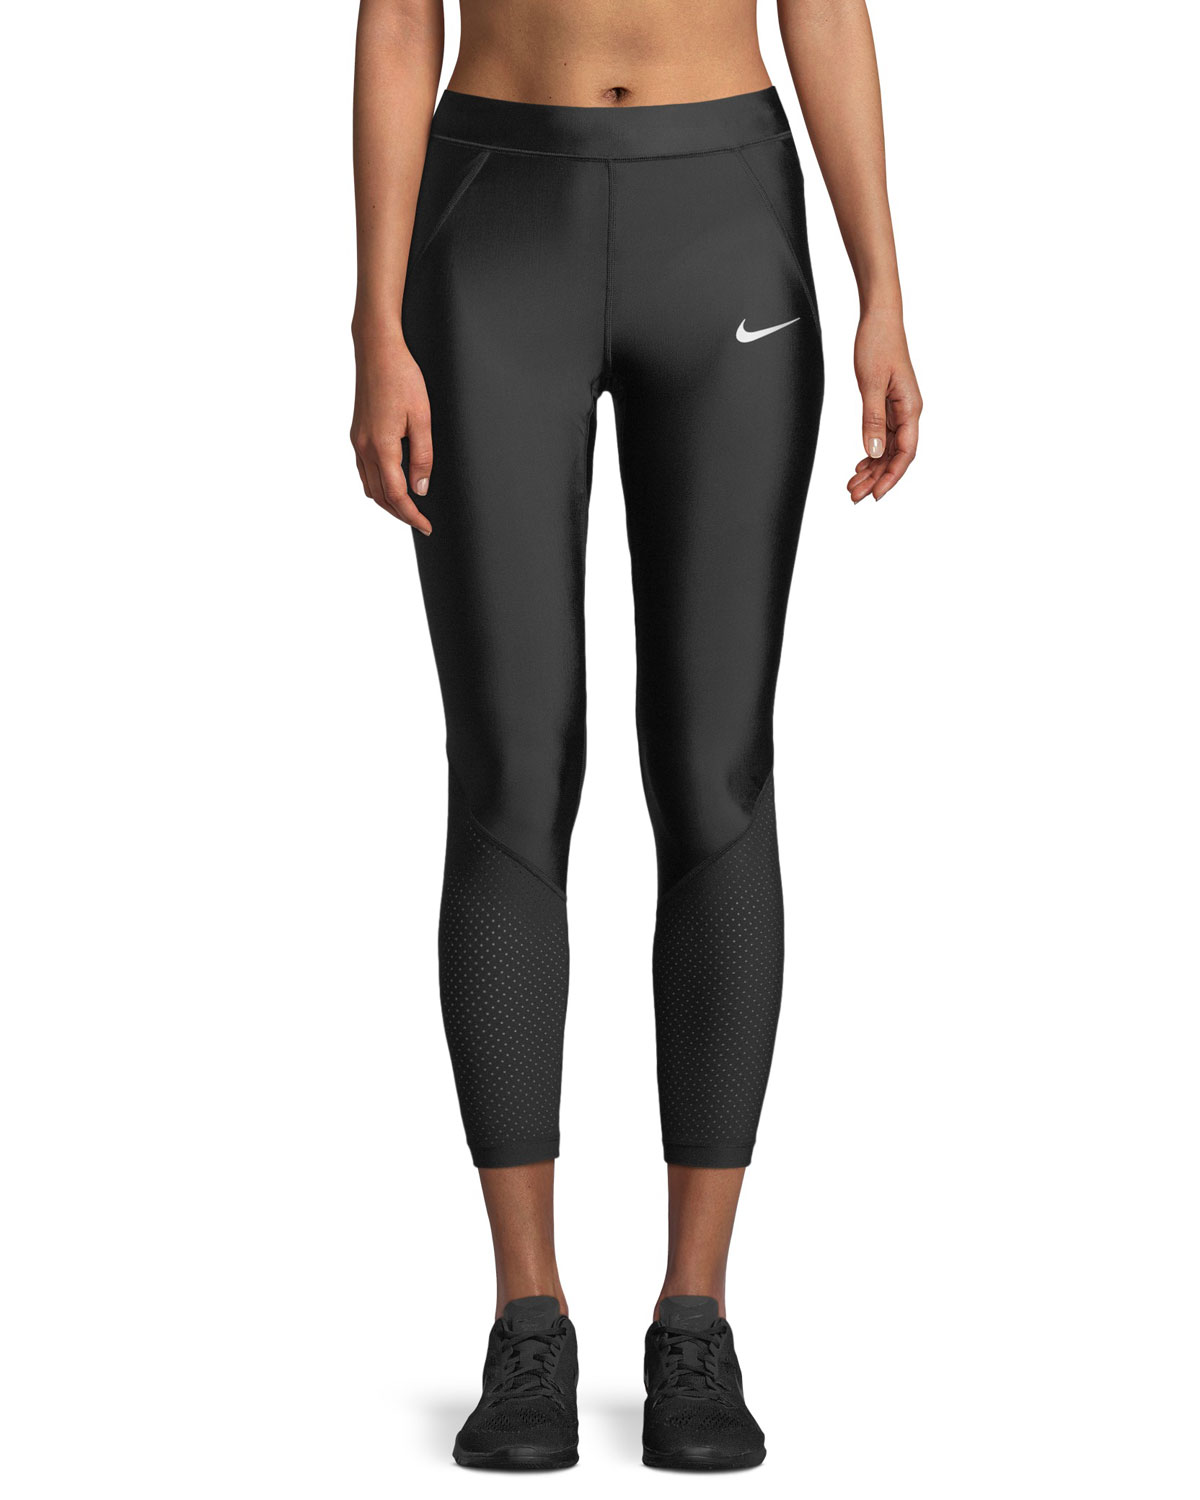 06c7792c6f7442 Nike Speed 7/8 Mesh-Panel Running Tights | Neiman Marcus